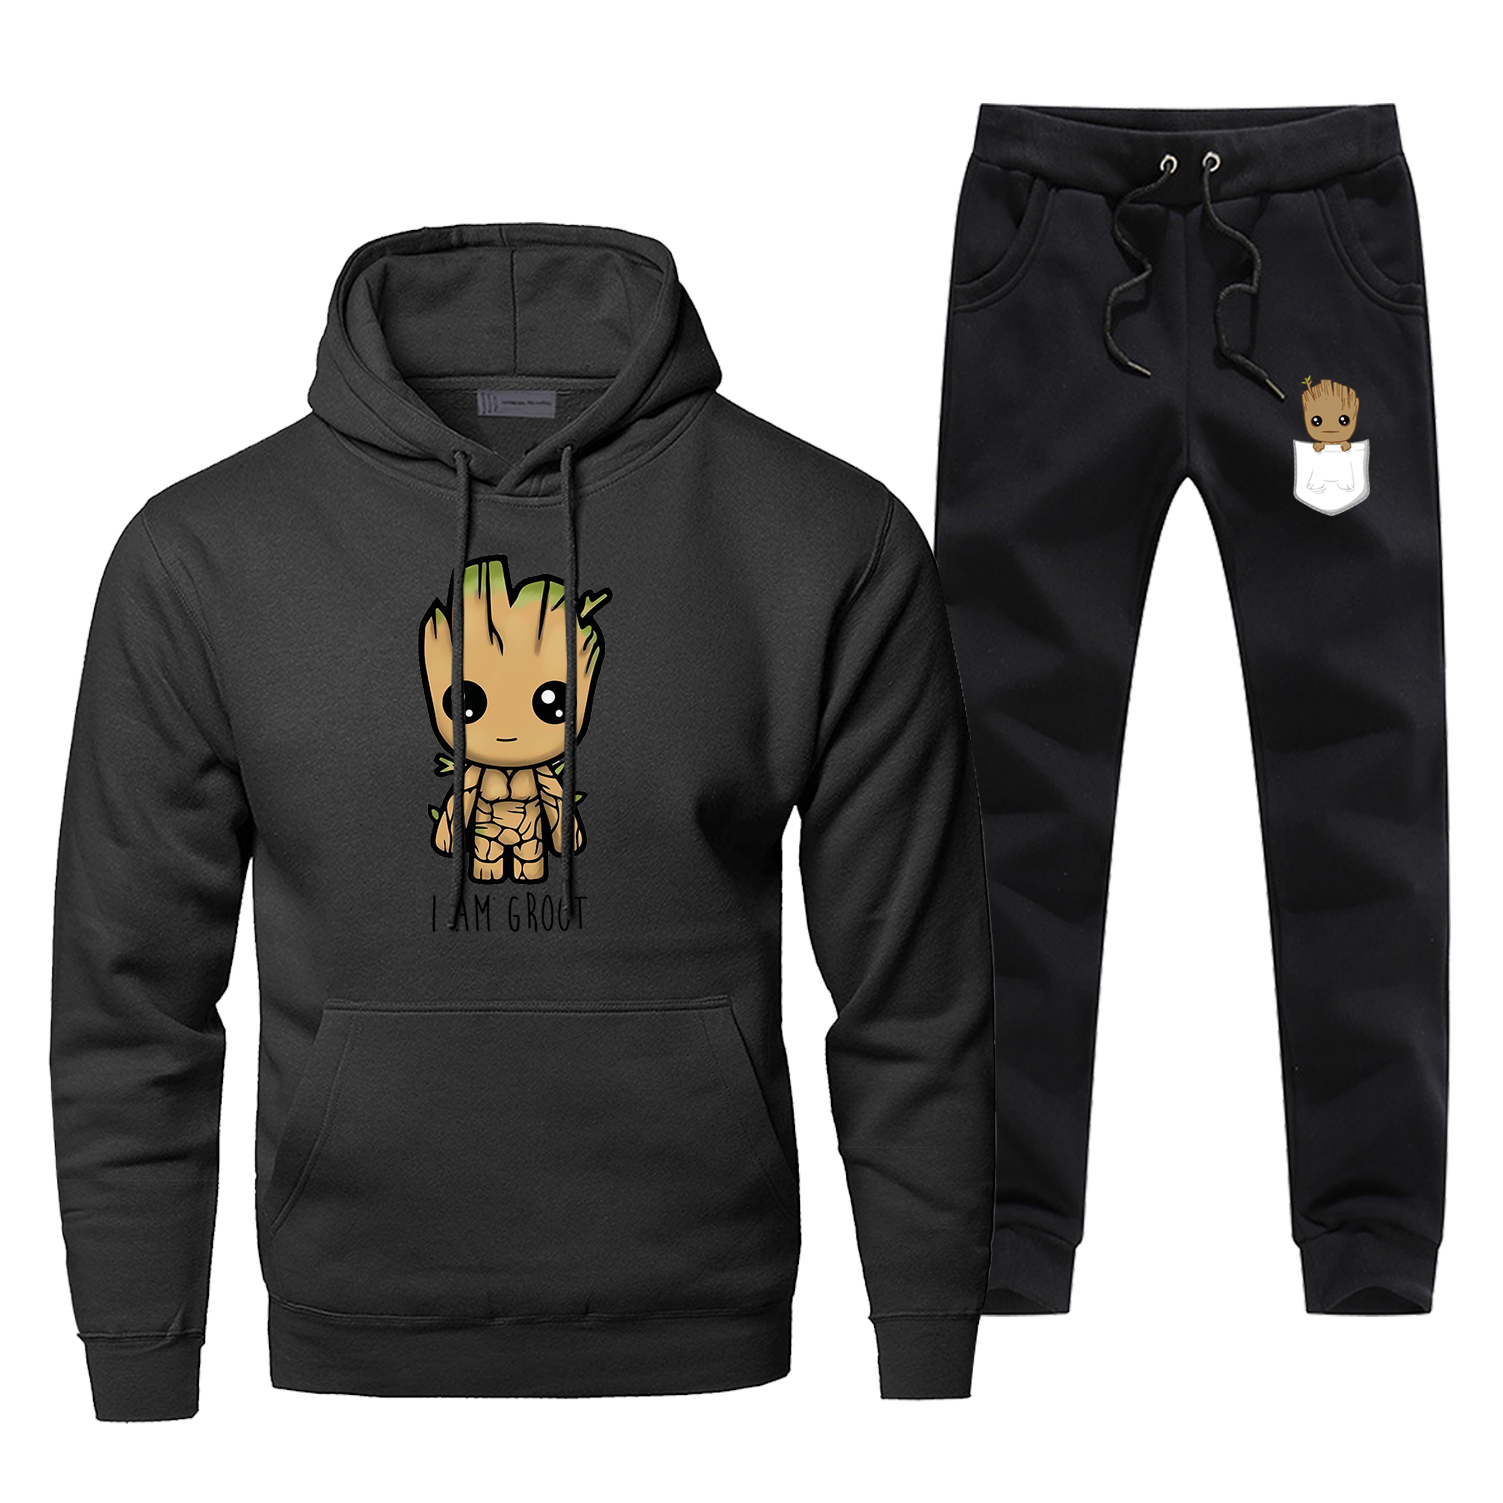 Fashion Marvel Avengers Hoodie Tracksuit I Am Groot Print Hoodies+pants Sportswear Men Two-piece Sets Fleece Warm Sweatpants